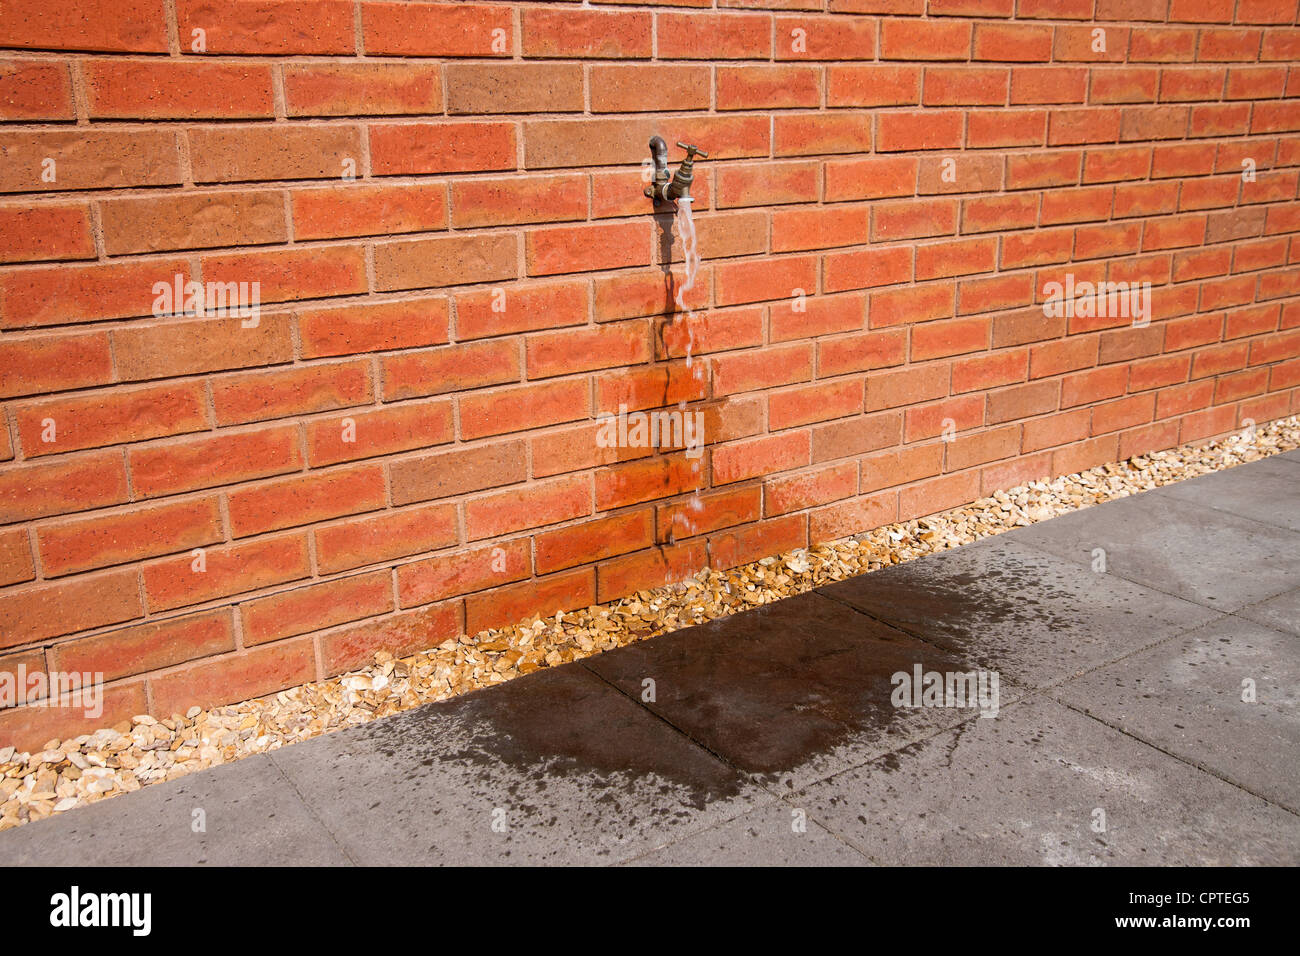 Outdoor tap with running water - Stock Image